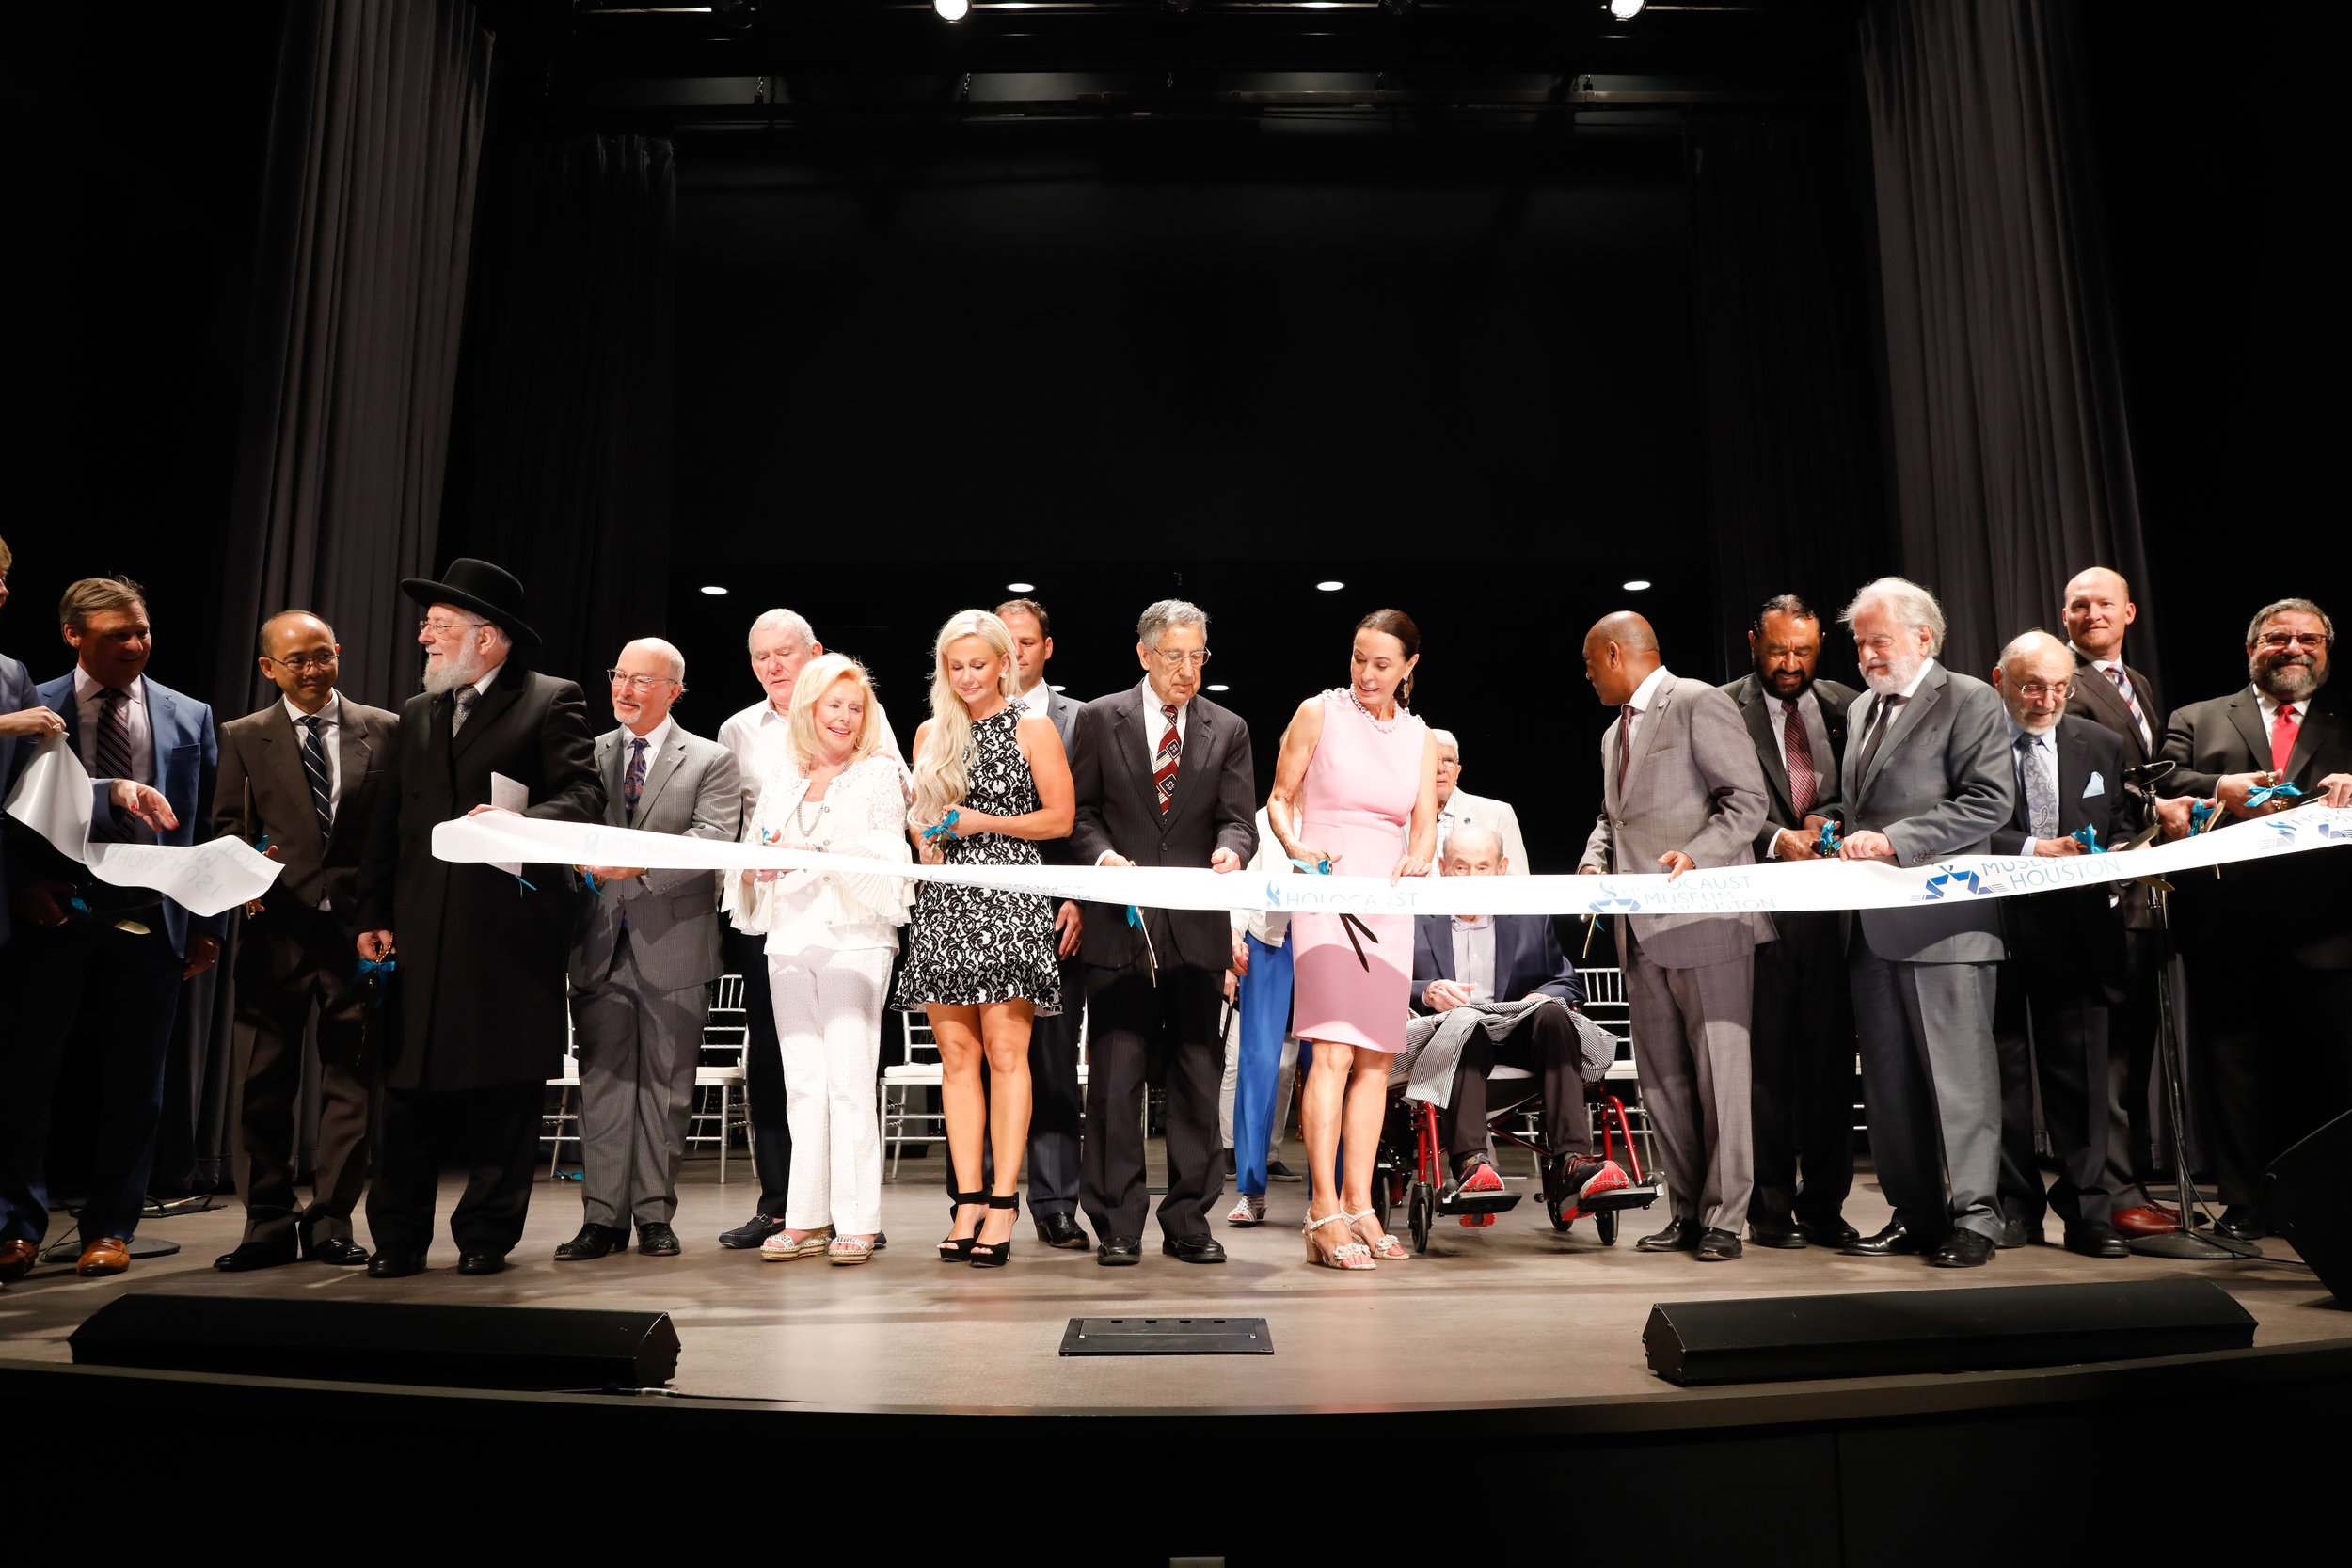 HMH Ribbon Cutting Ceremony, 16 June 2019; Photographed. by Priscilla Dickson